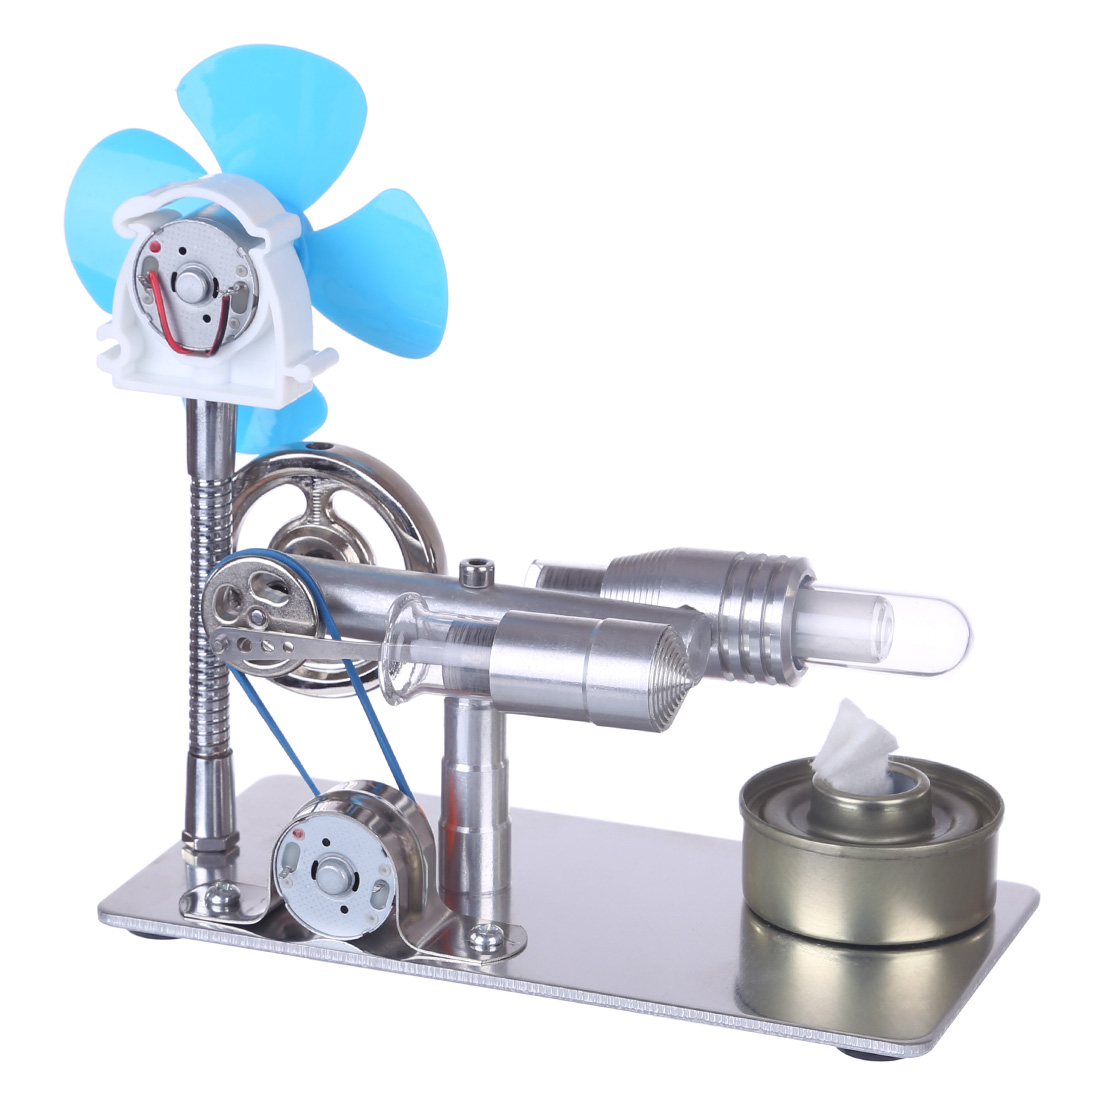 Surwish 1 Set Single Cylinder Stirling Engine Model With Bulb And Fan With High Quality 2020 DIY Science Gifts-Random Bulb Color